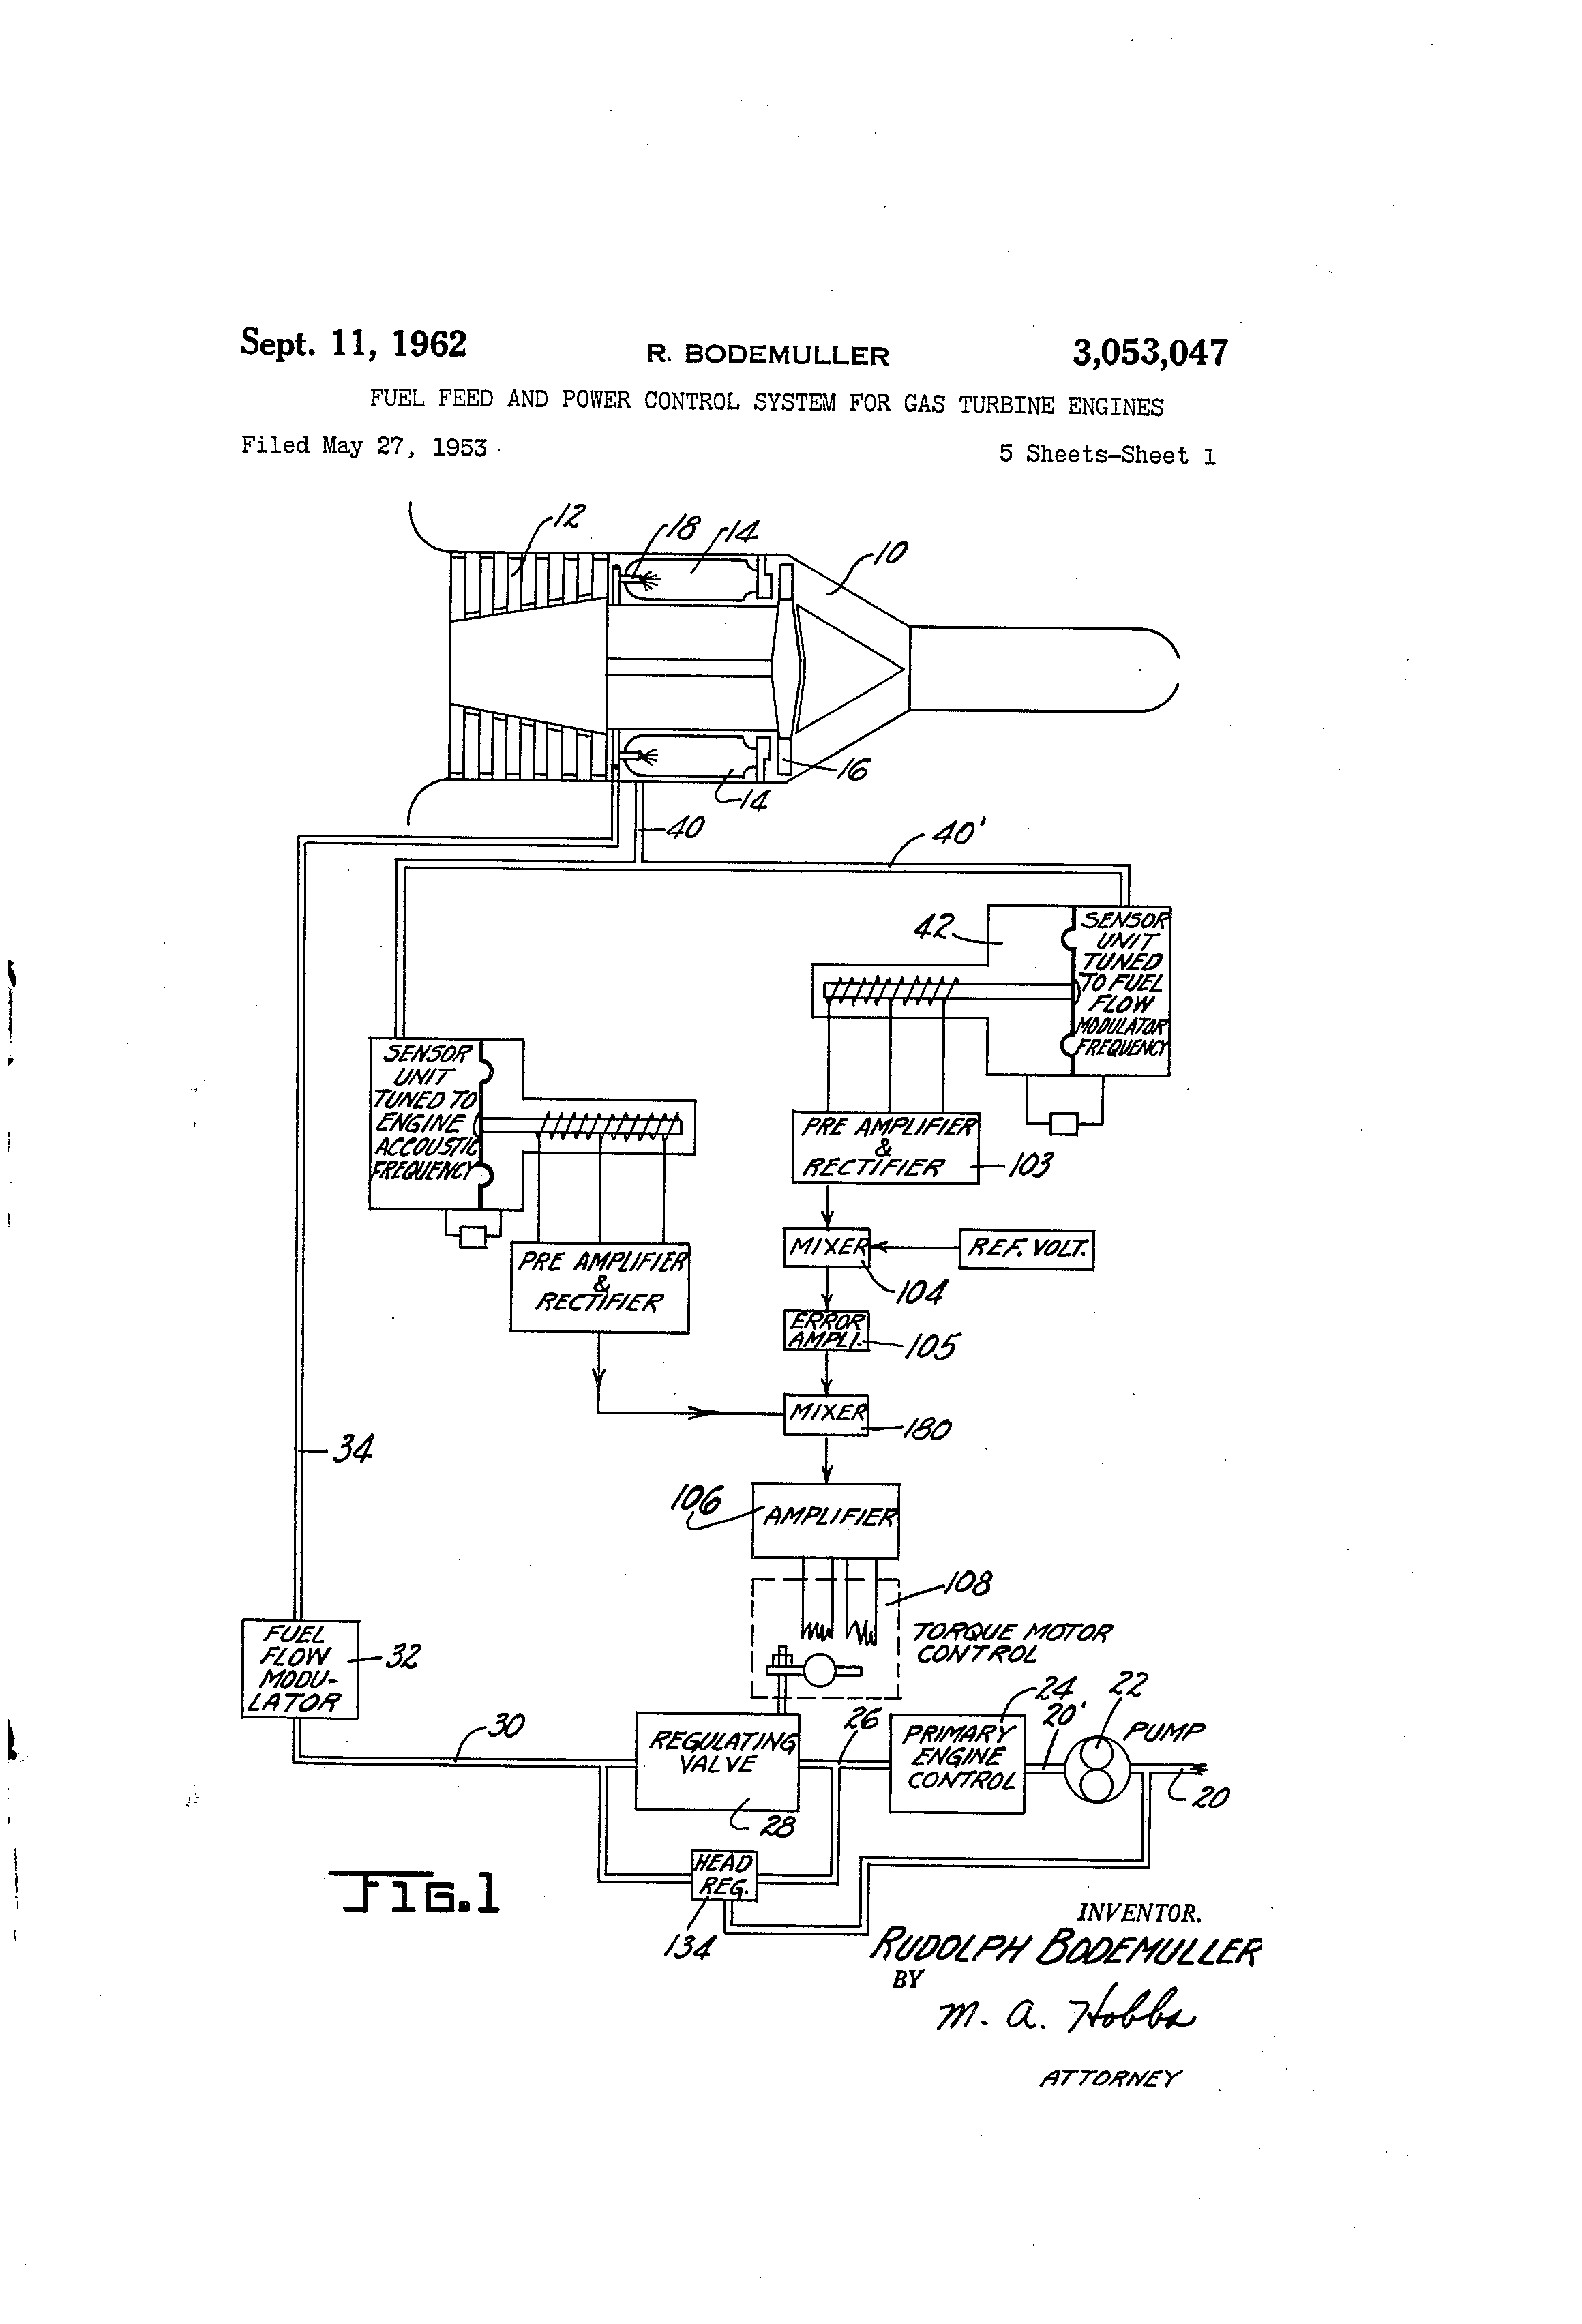 Brevet Us3053047 Fuel Feed And Power Control System For Gas Injected 305 Engine Diagram Patent Drawing